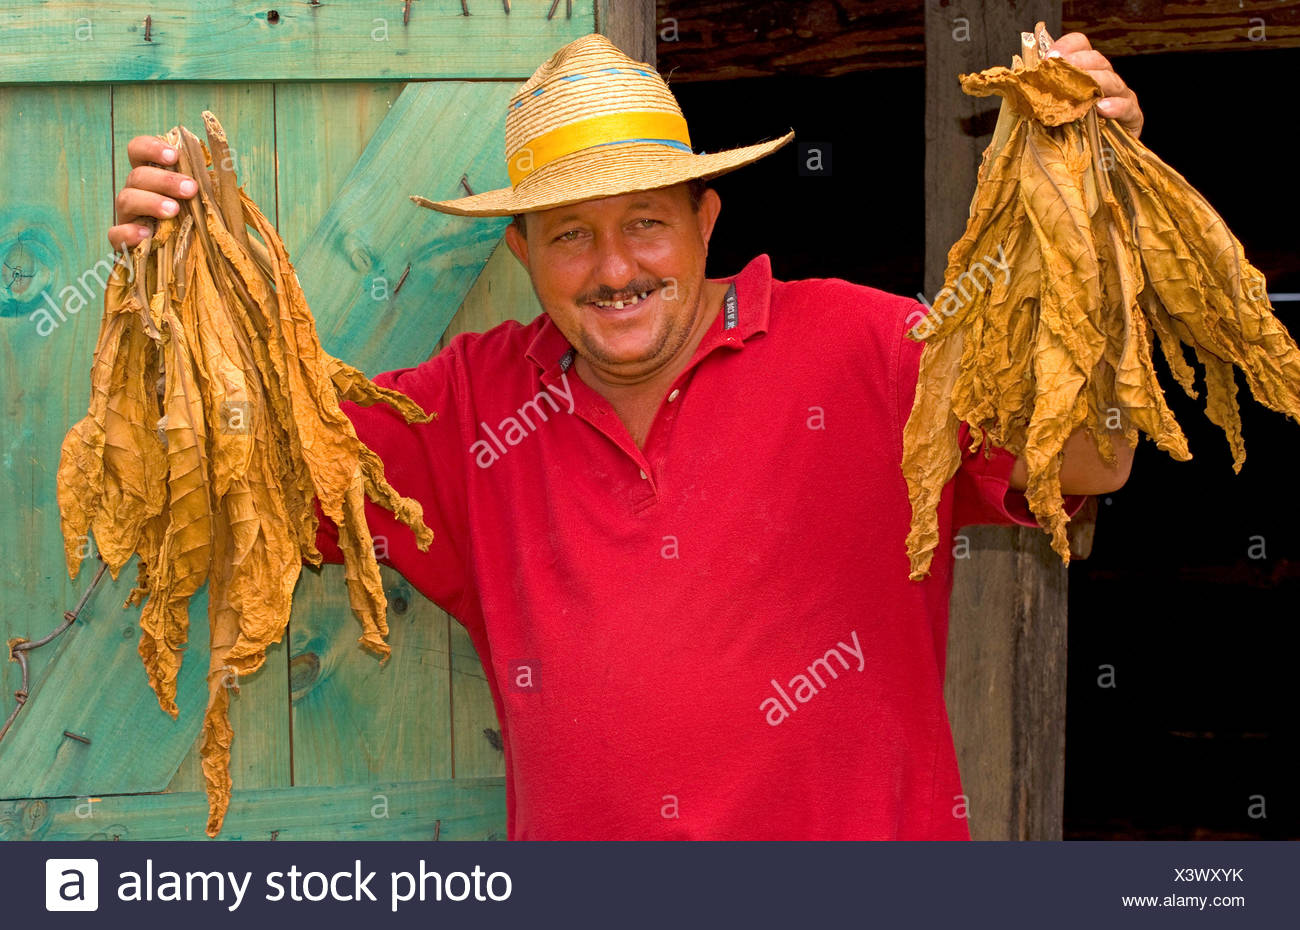 farmer proudly showing dried tobacco leaves, portrait, Cuba, Sierra del Rosario - Stock Image